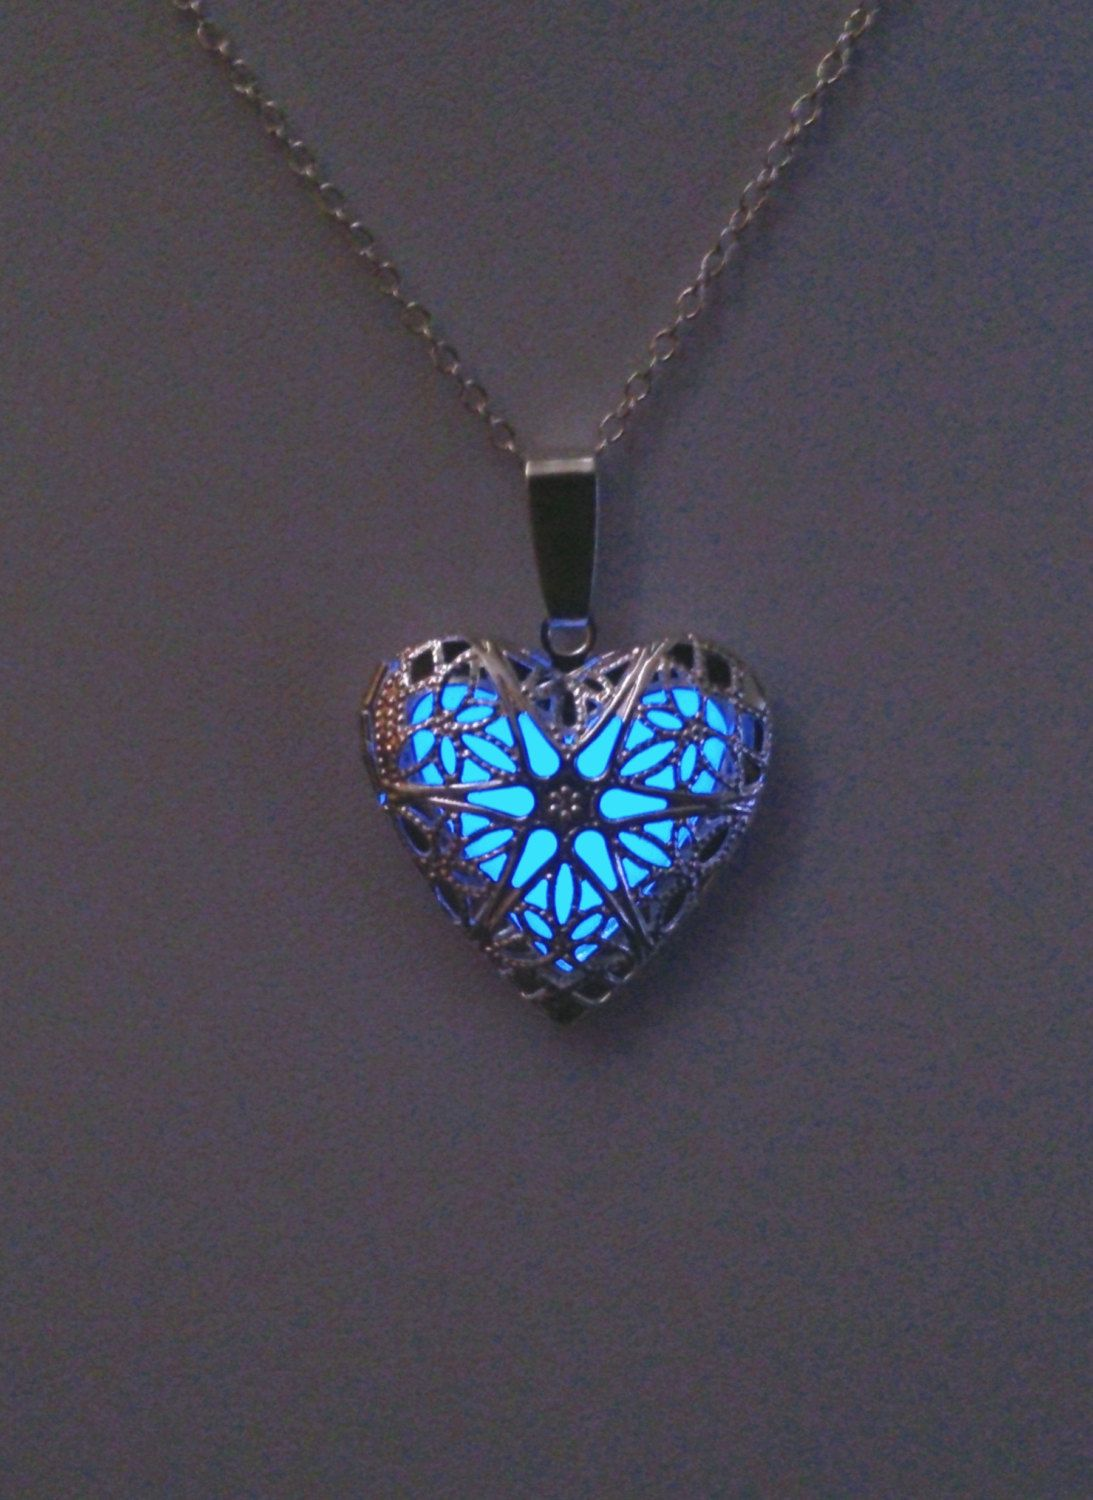 Glowing locket heart necklace wife gift easter gift glow glowing locket heart necklace wife gift easter gift glow in the dark pendant glowing charm bridesmaid necklace gifts for her negle Images